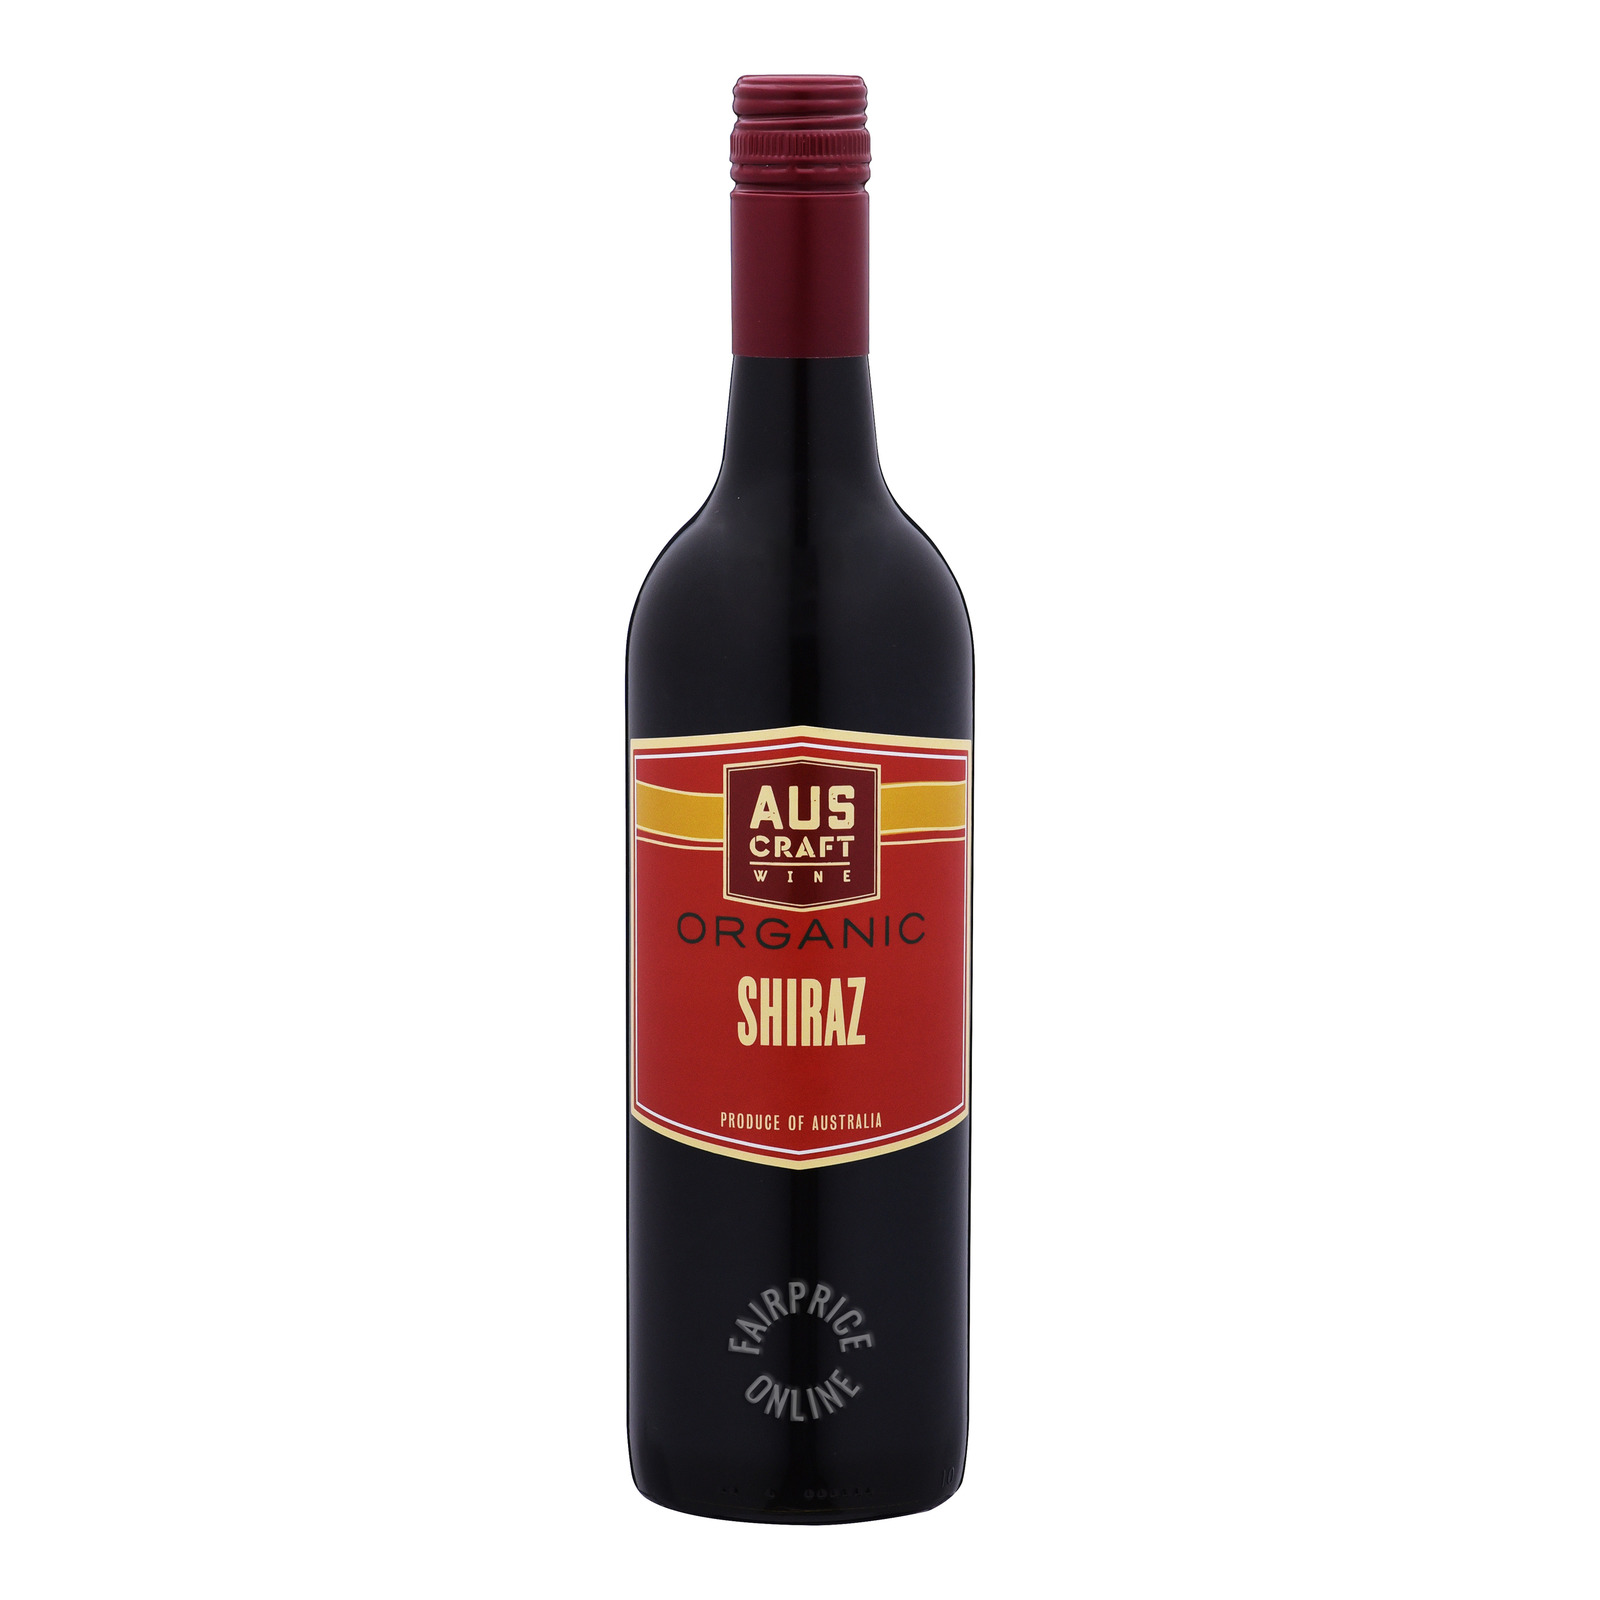 Aus Craft Organic Red Wine - Shiraz